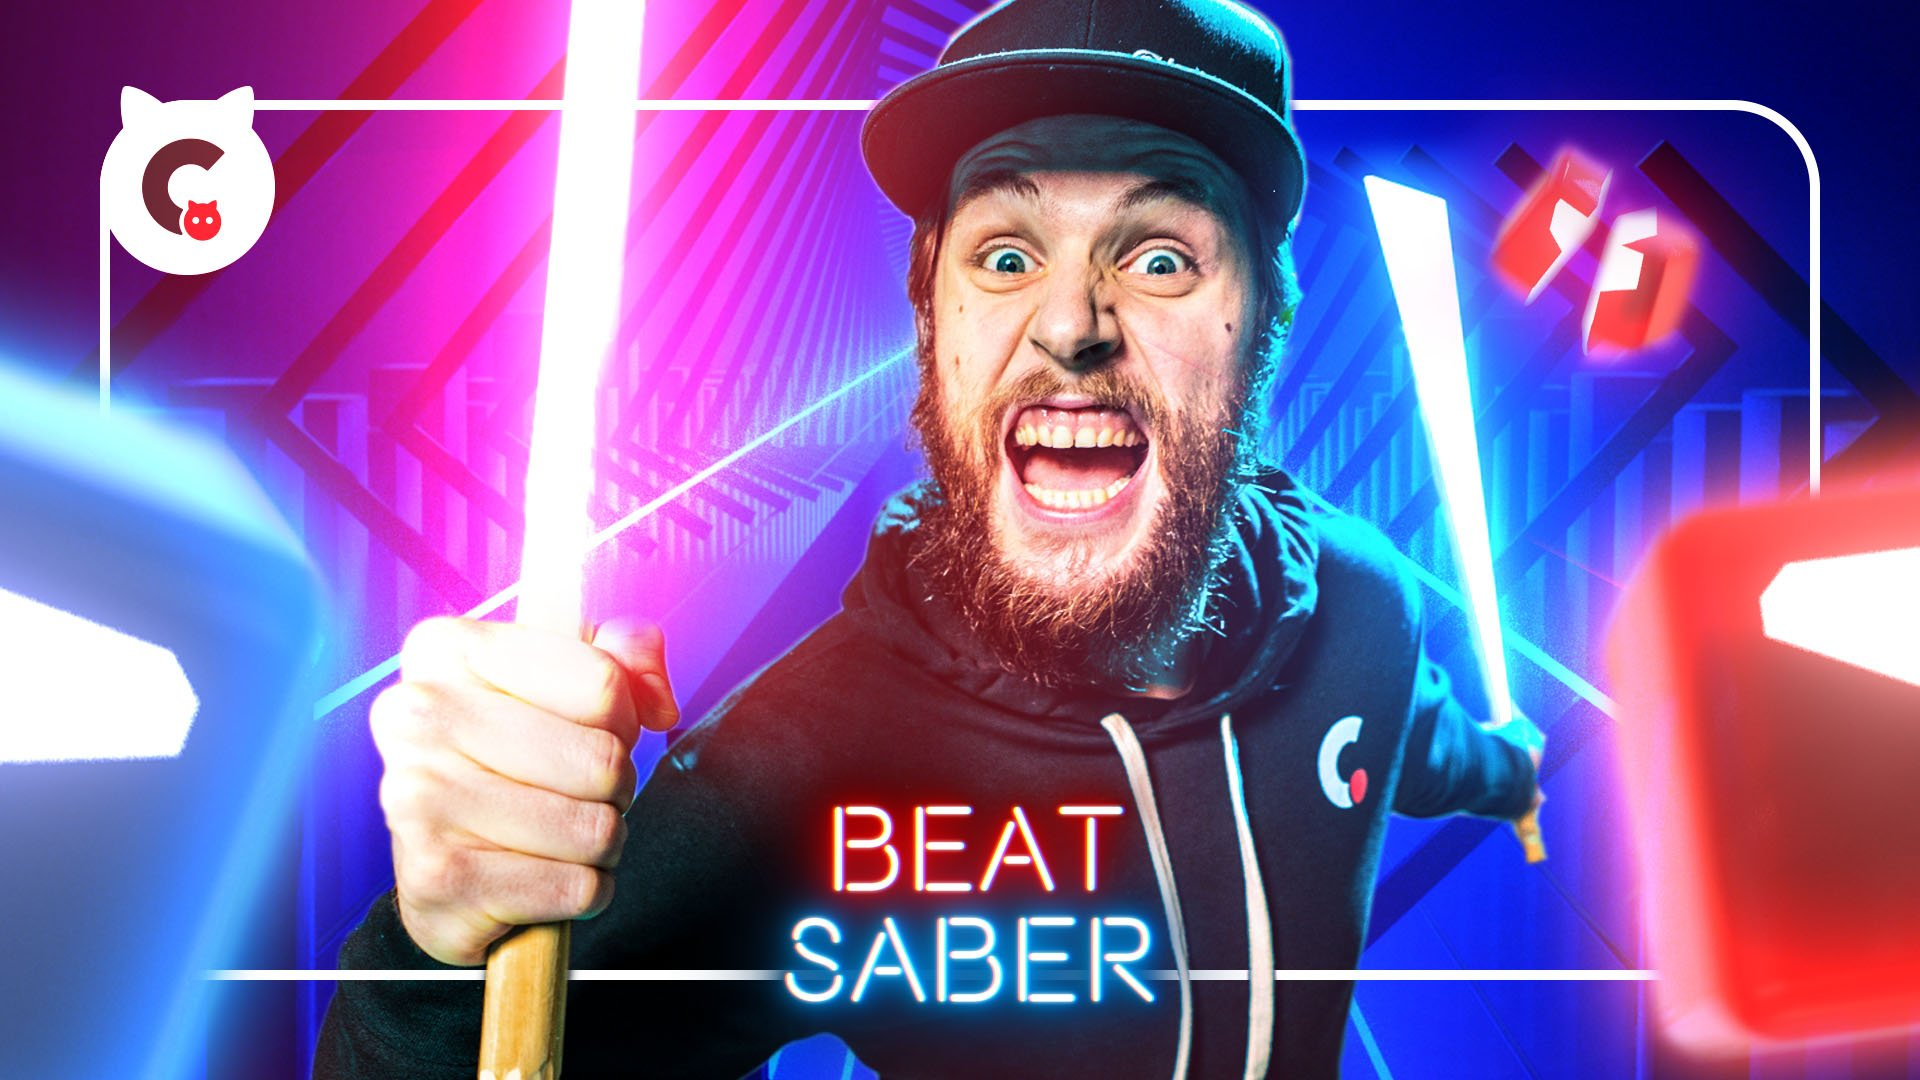 BeatSaber 3D animation Kevin Parry